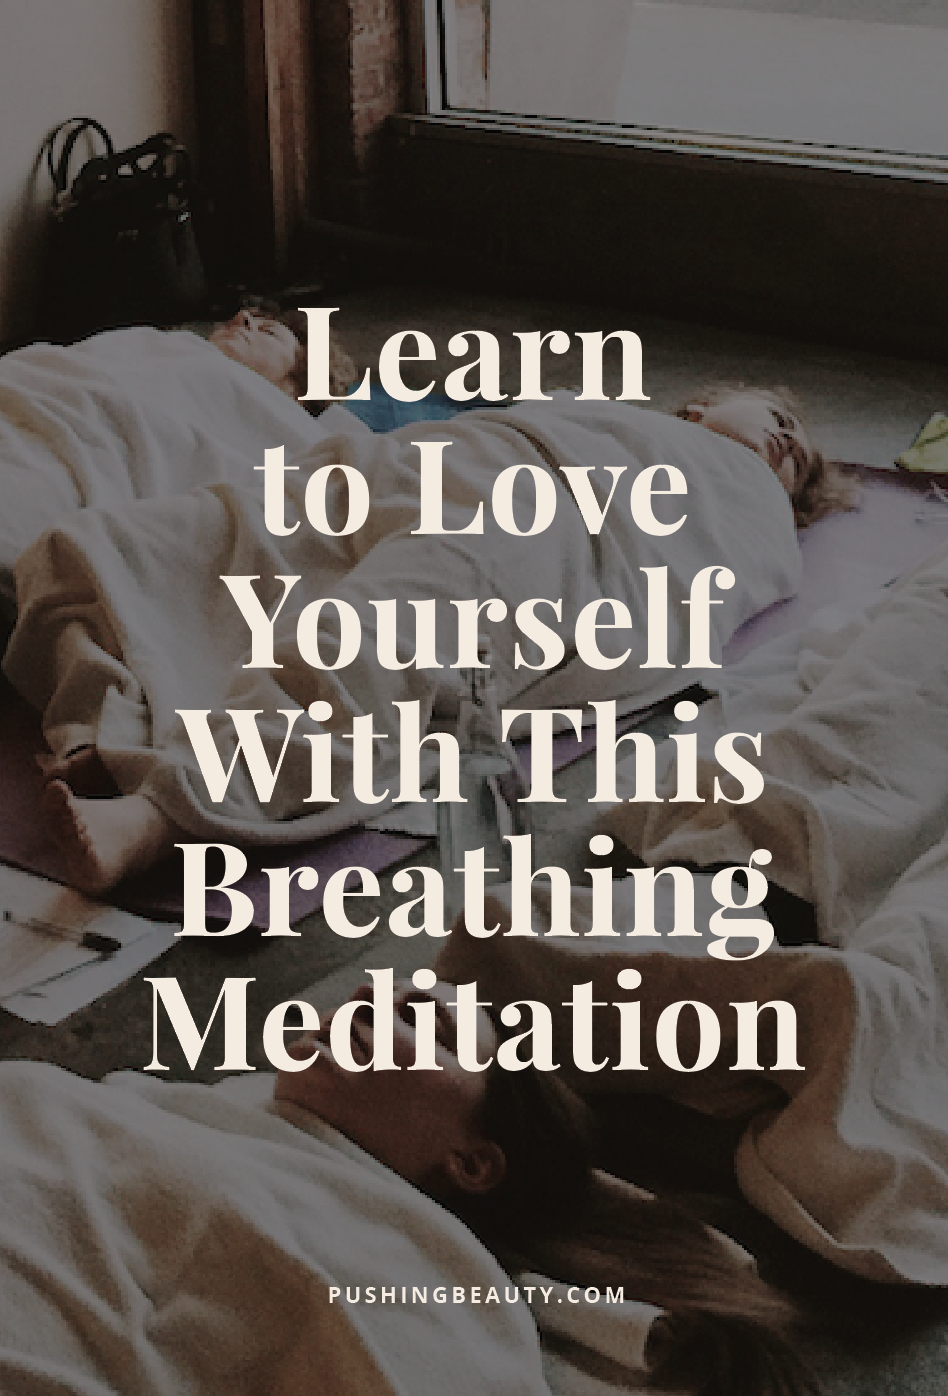 Breathing+Meditation+for+Self+Love.png